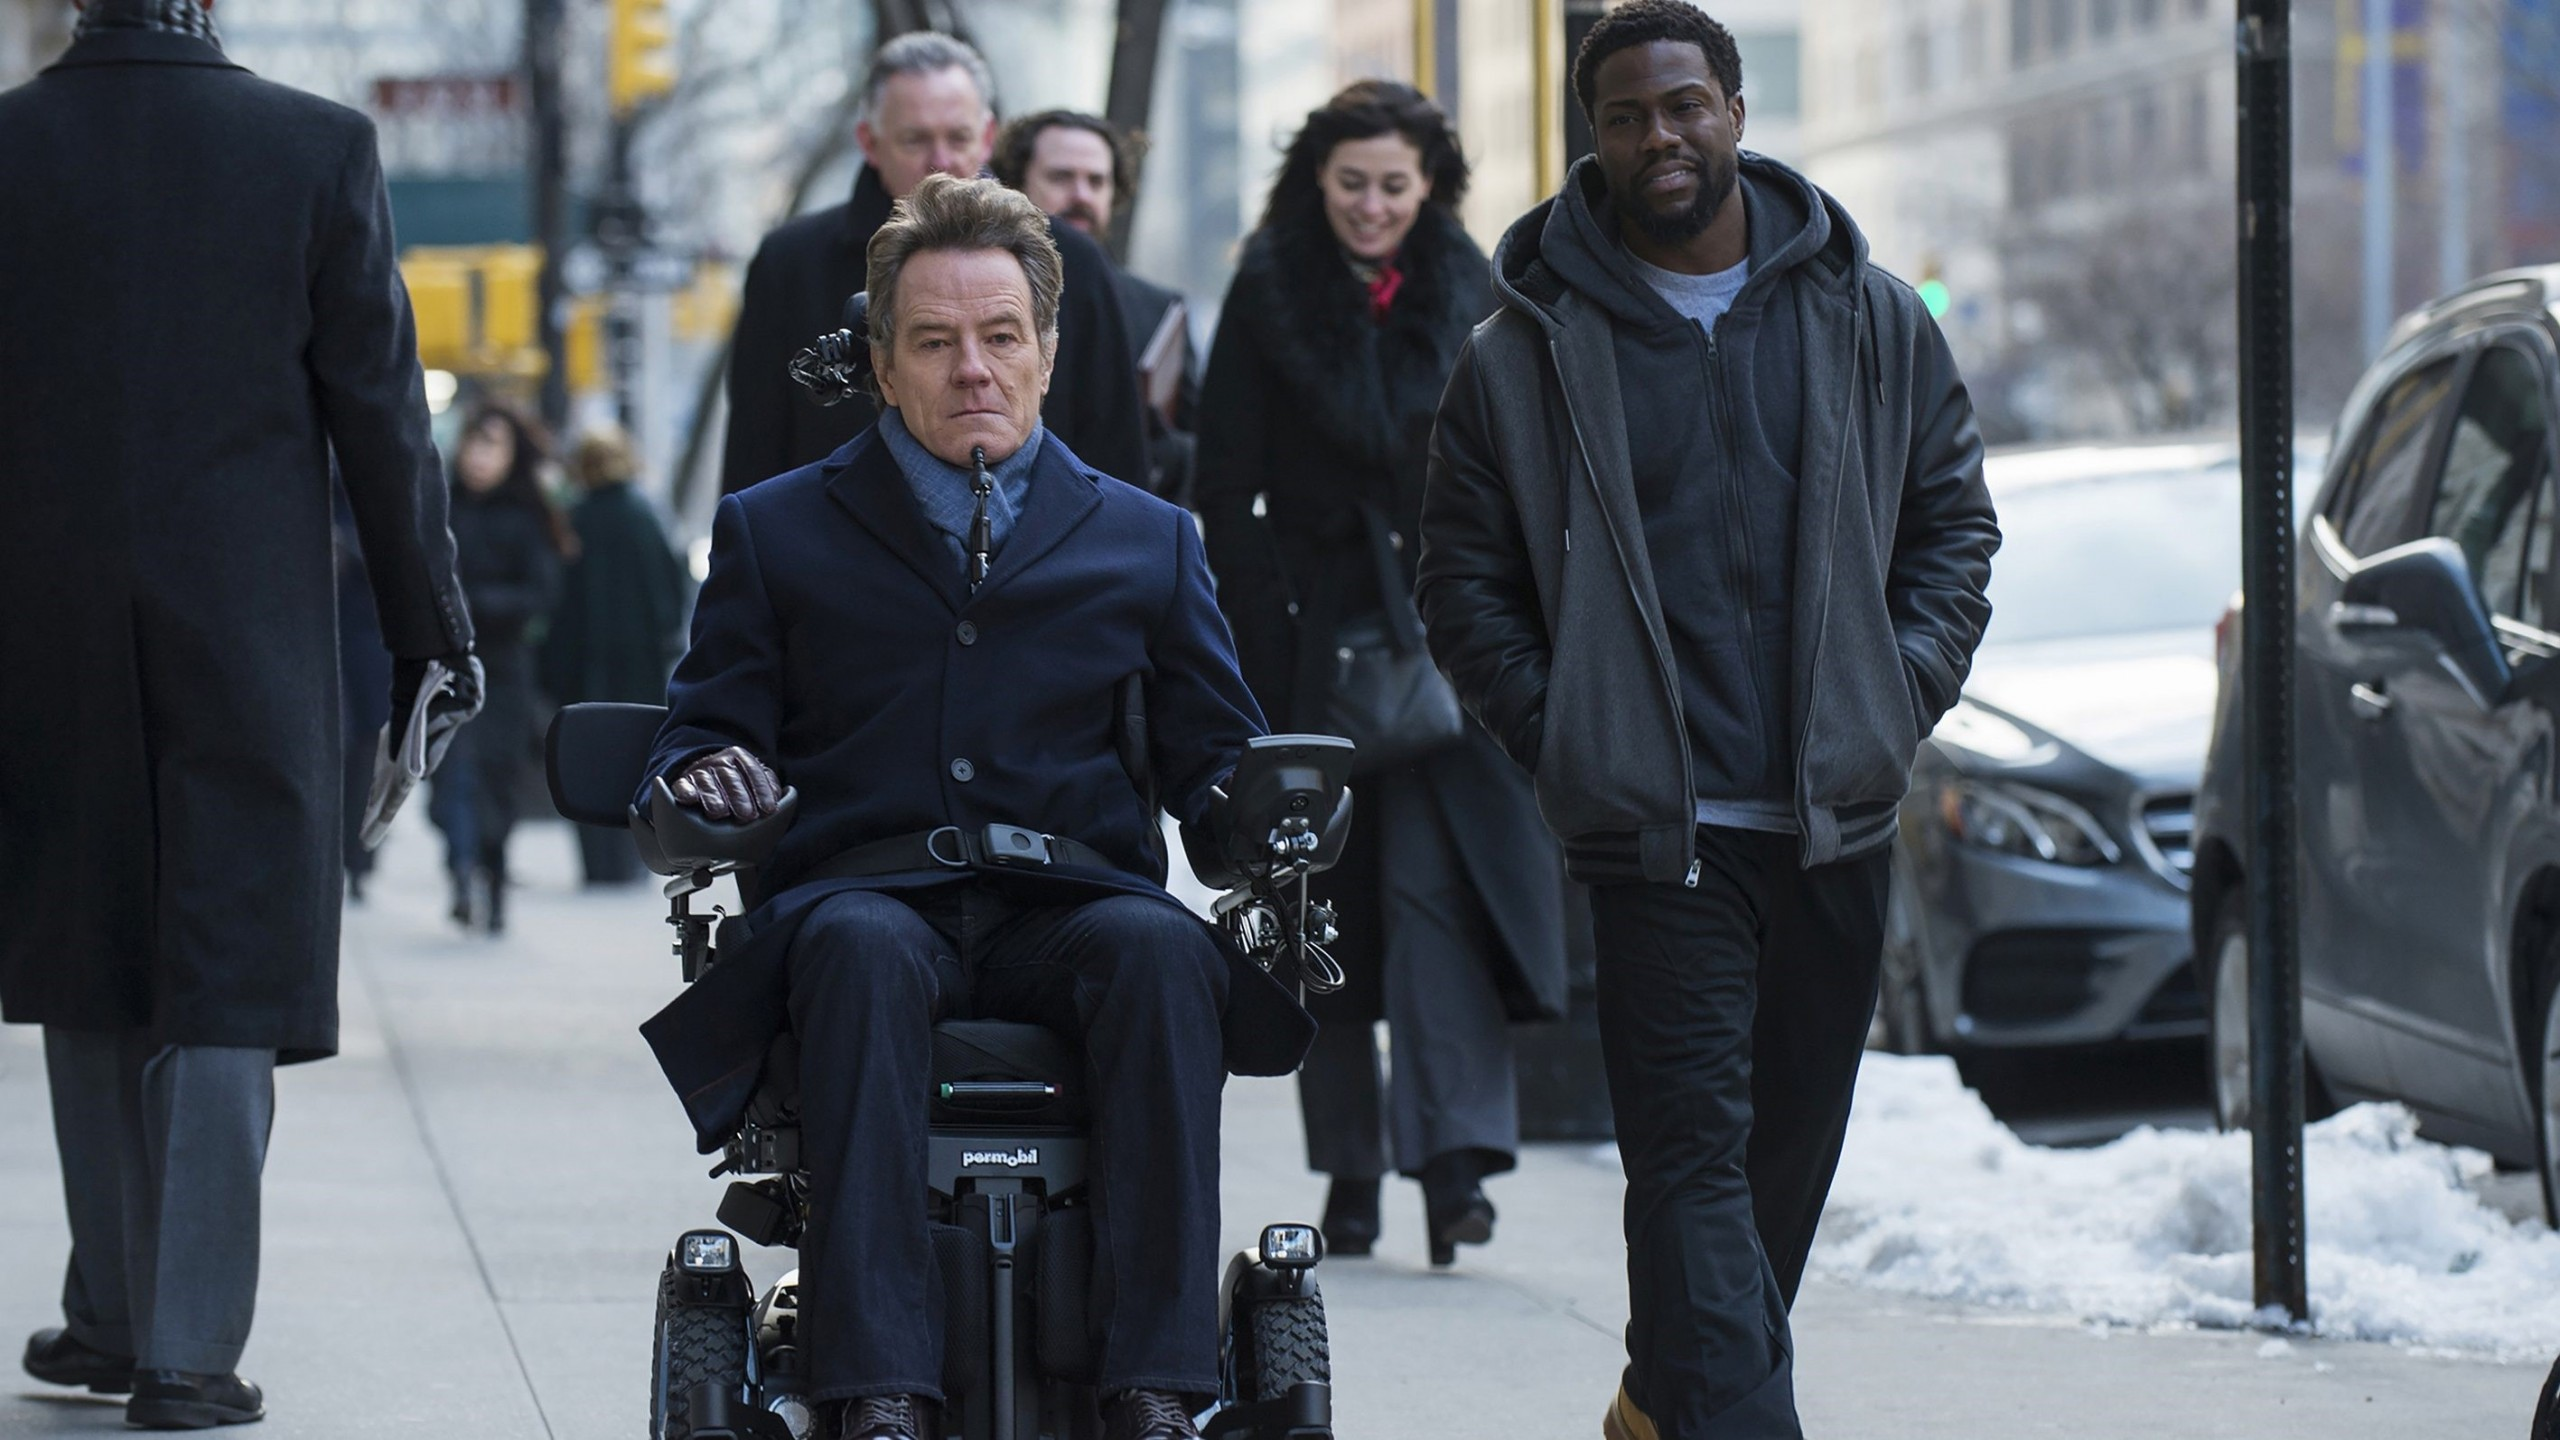 Wallpaper The Upside Kevin Hart Bryan Cranston HD Movies 20989 2560x1440